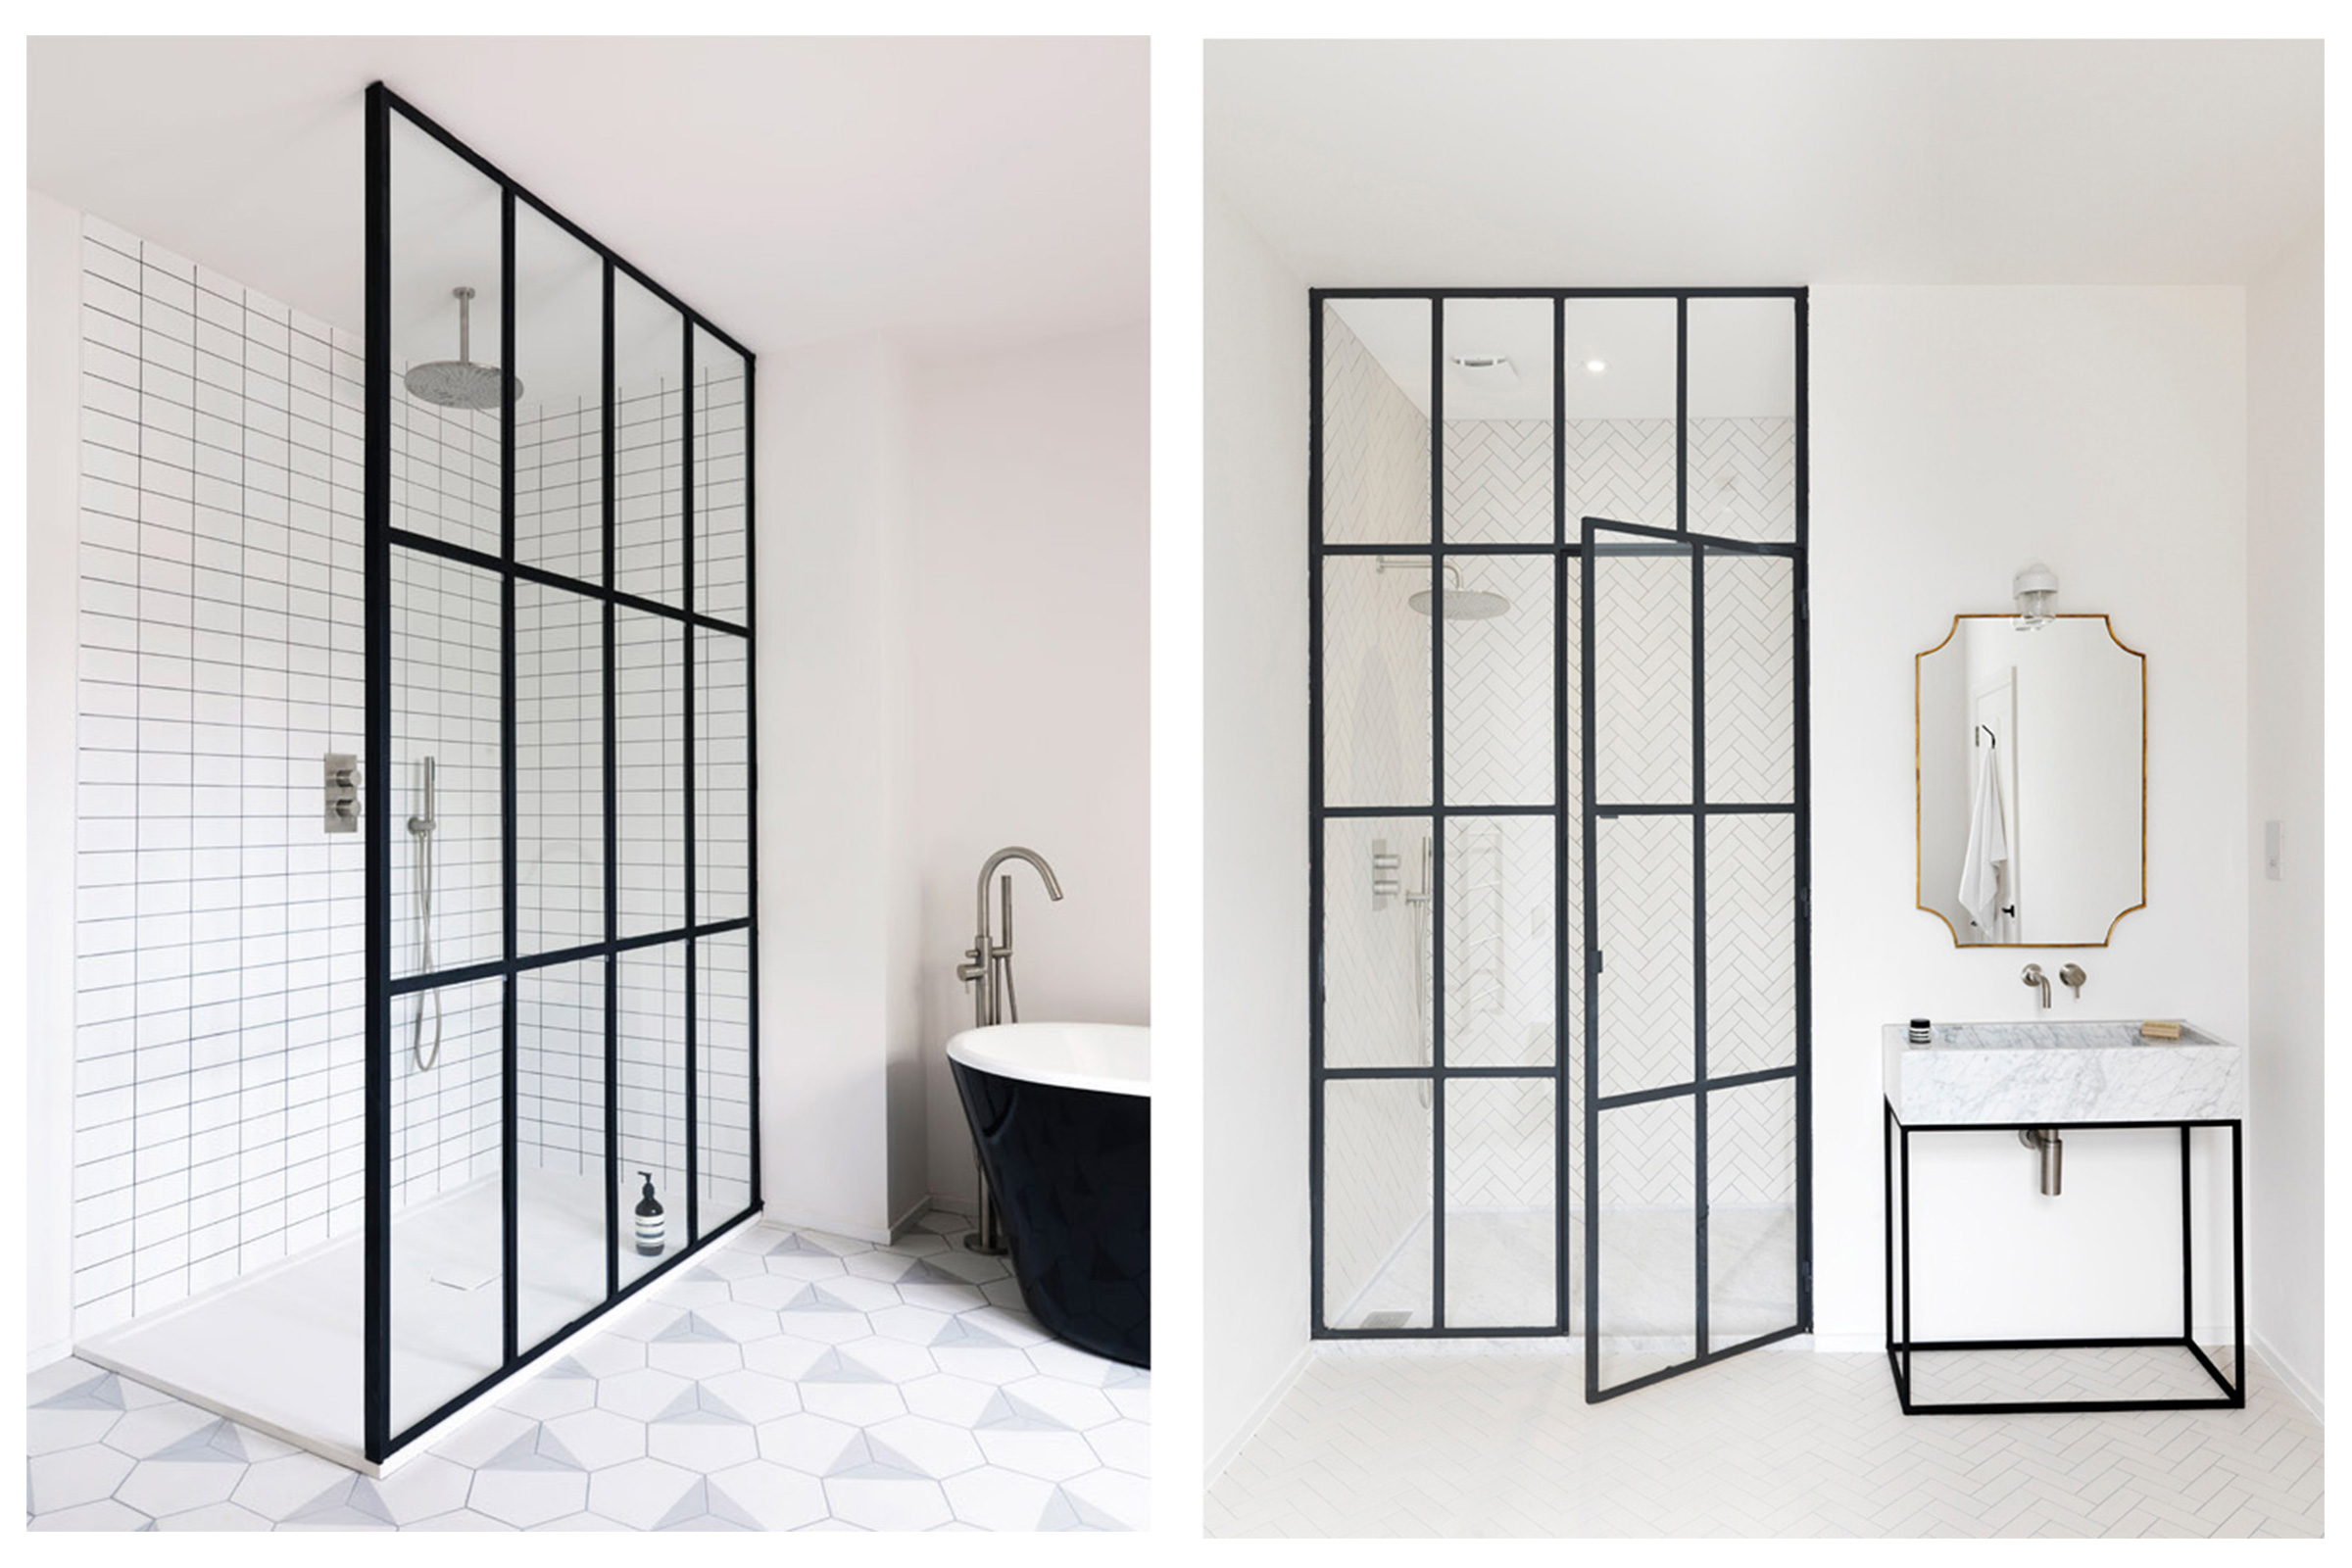 5 Sleek & Minimal Bathroom Designs